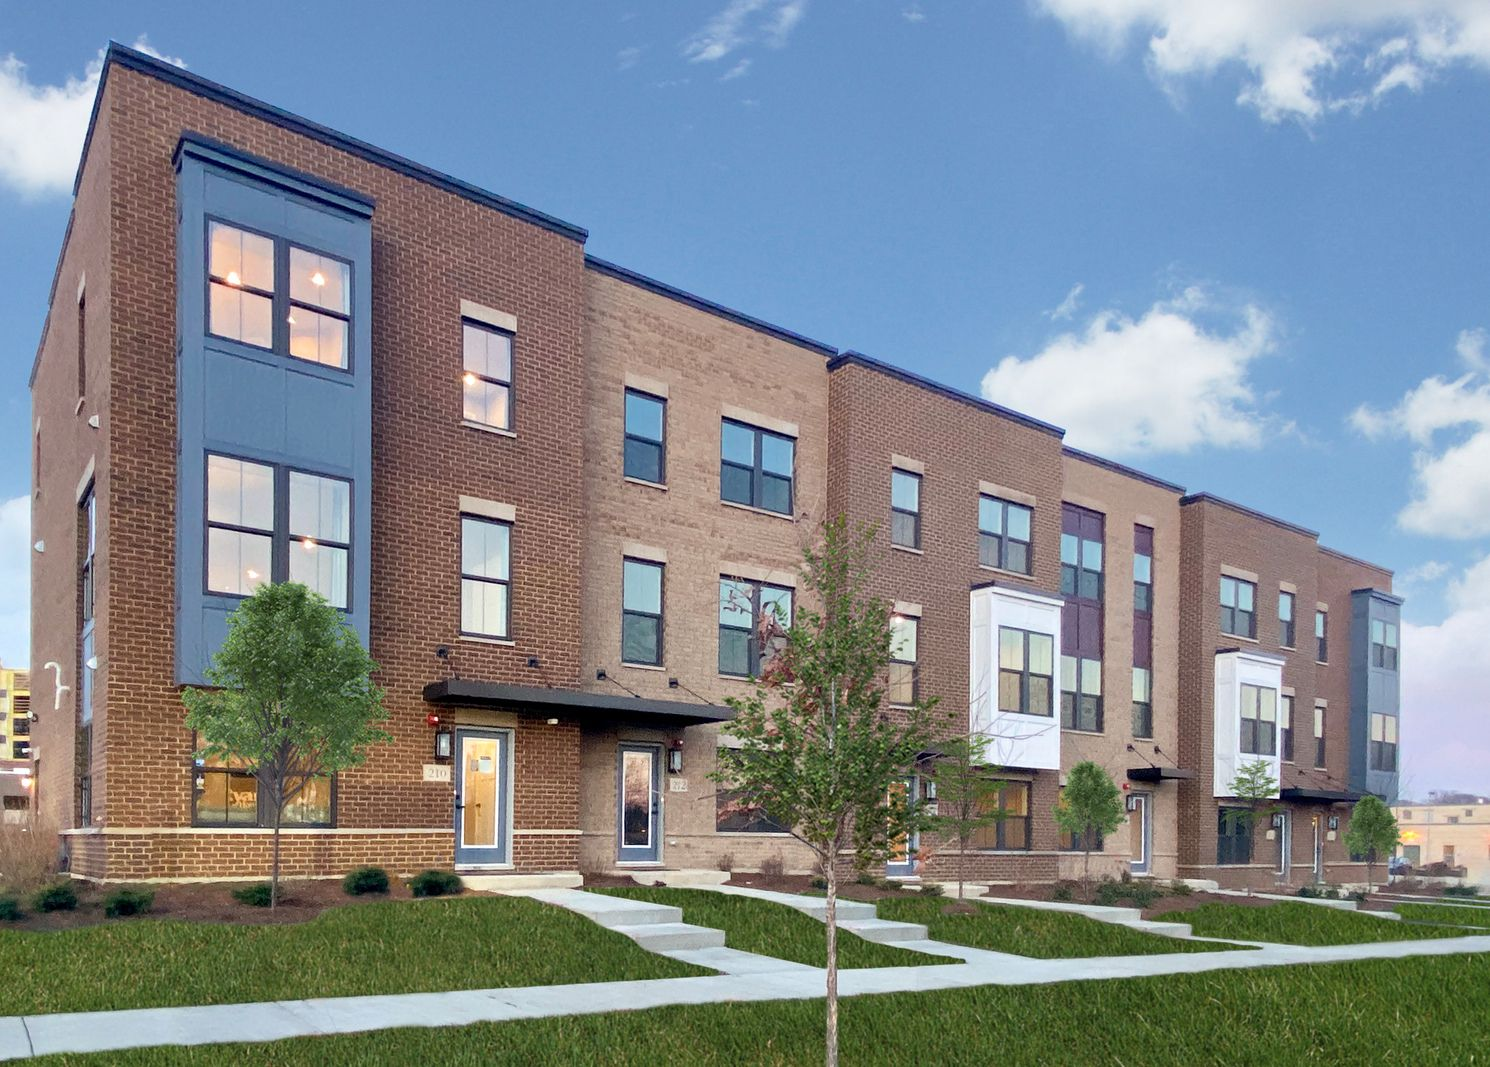 Luxury Rowhomes walkable to Downtown Mt. Prospect:Welcome to Maple Street Rowhomes! Own a brand new townhome with included luxury finishes. Walk to the Metra, Lions Park, schools, and charming Downtown Mt. Prospect.Schedule your visittoday!